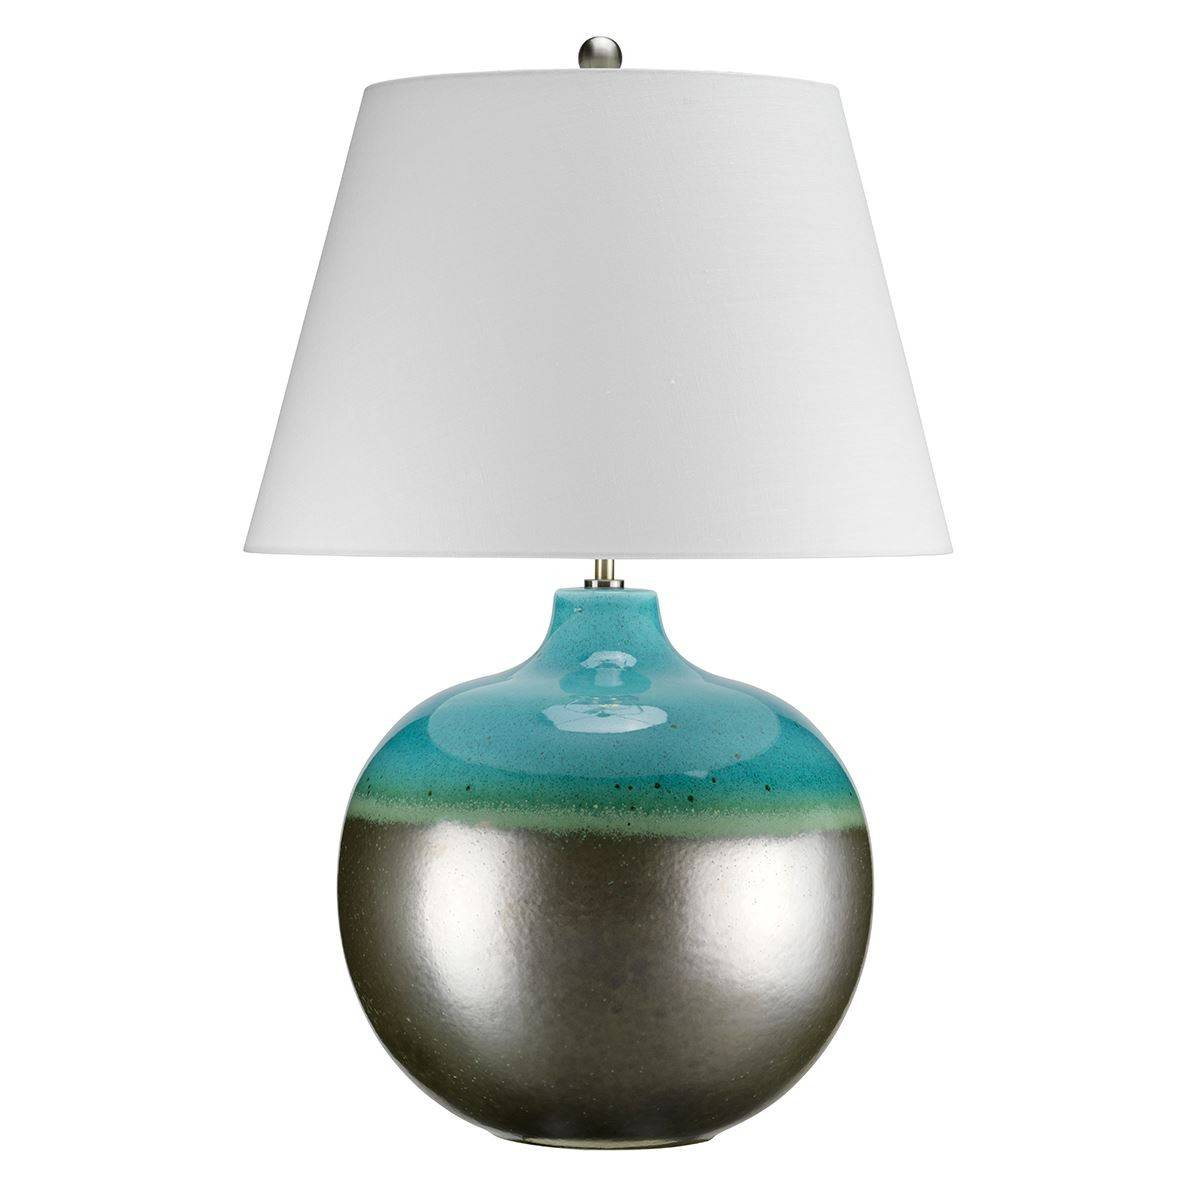 Image of: 1 Light Table Lamp Graphite Turquoise